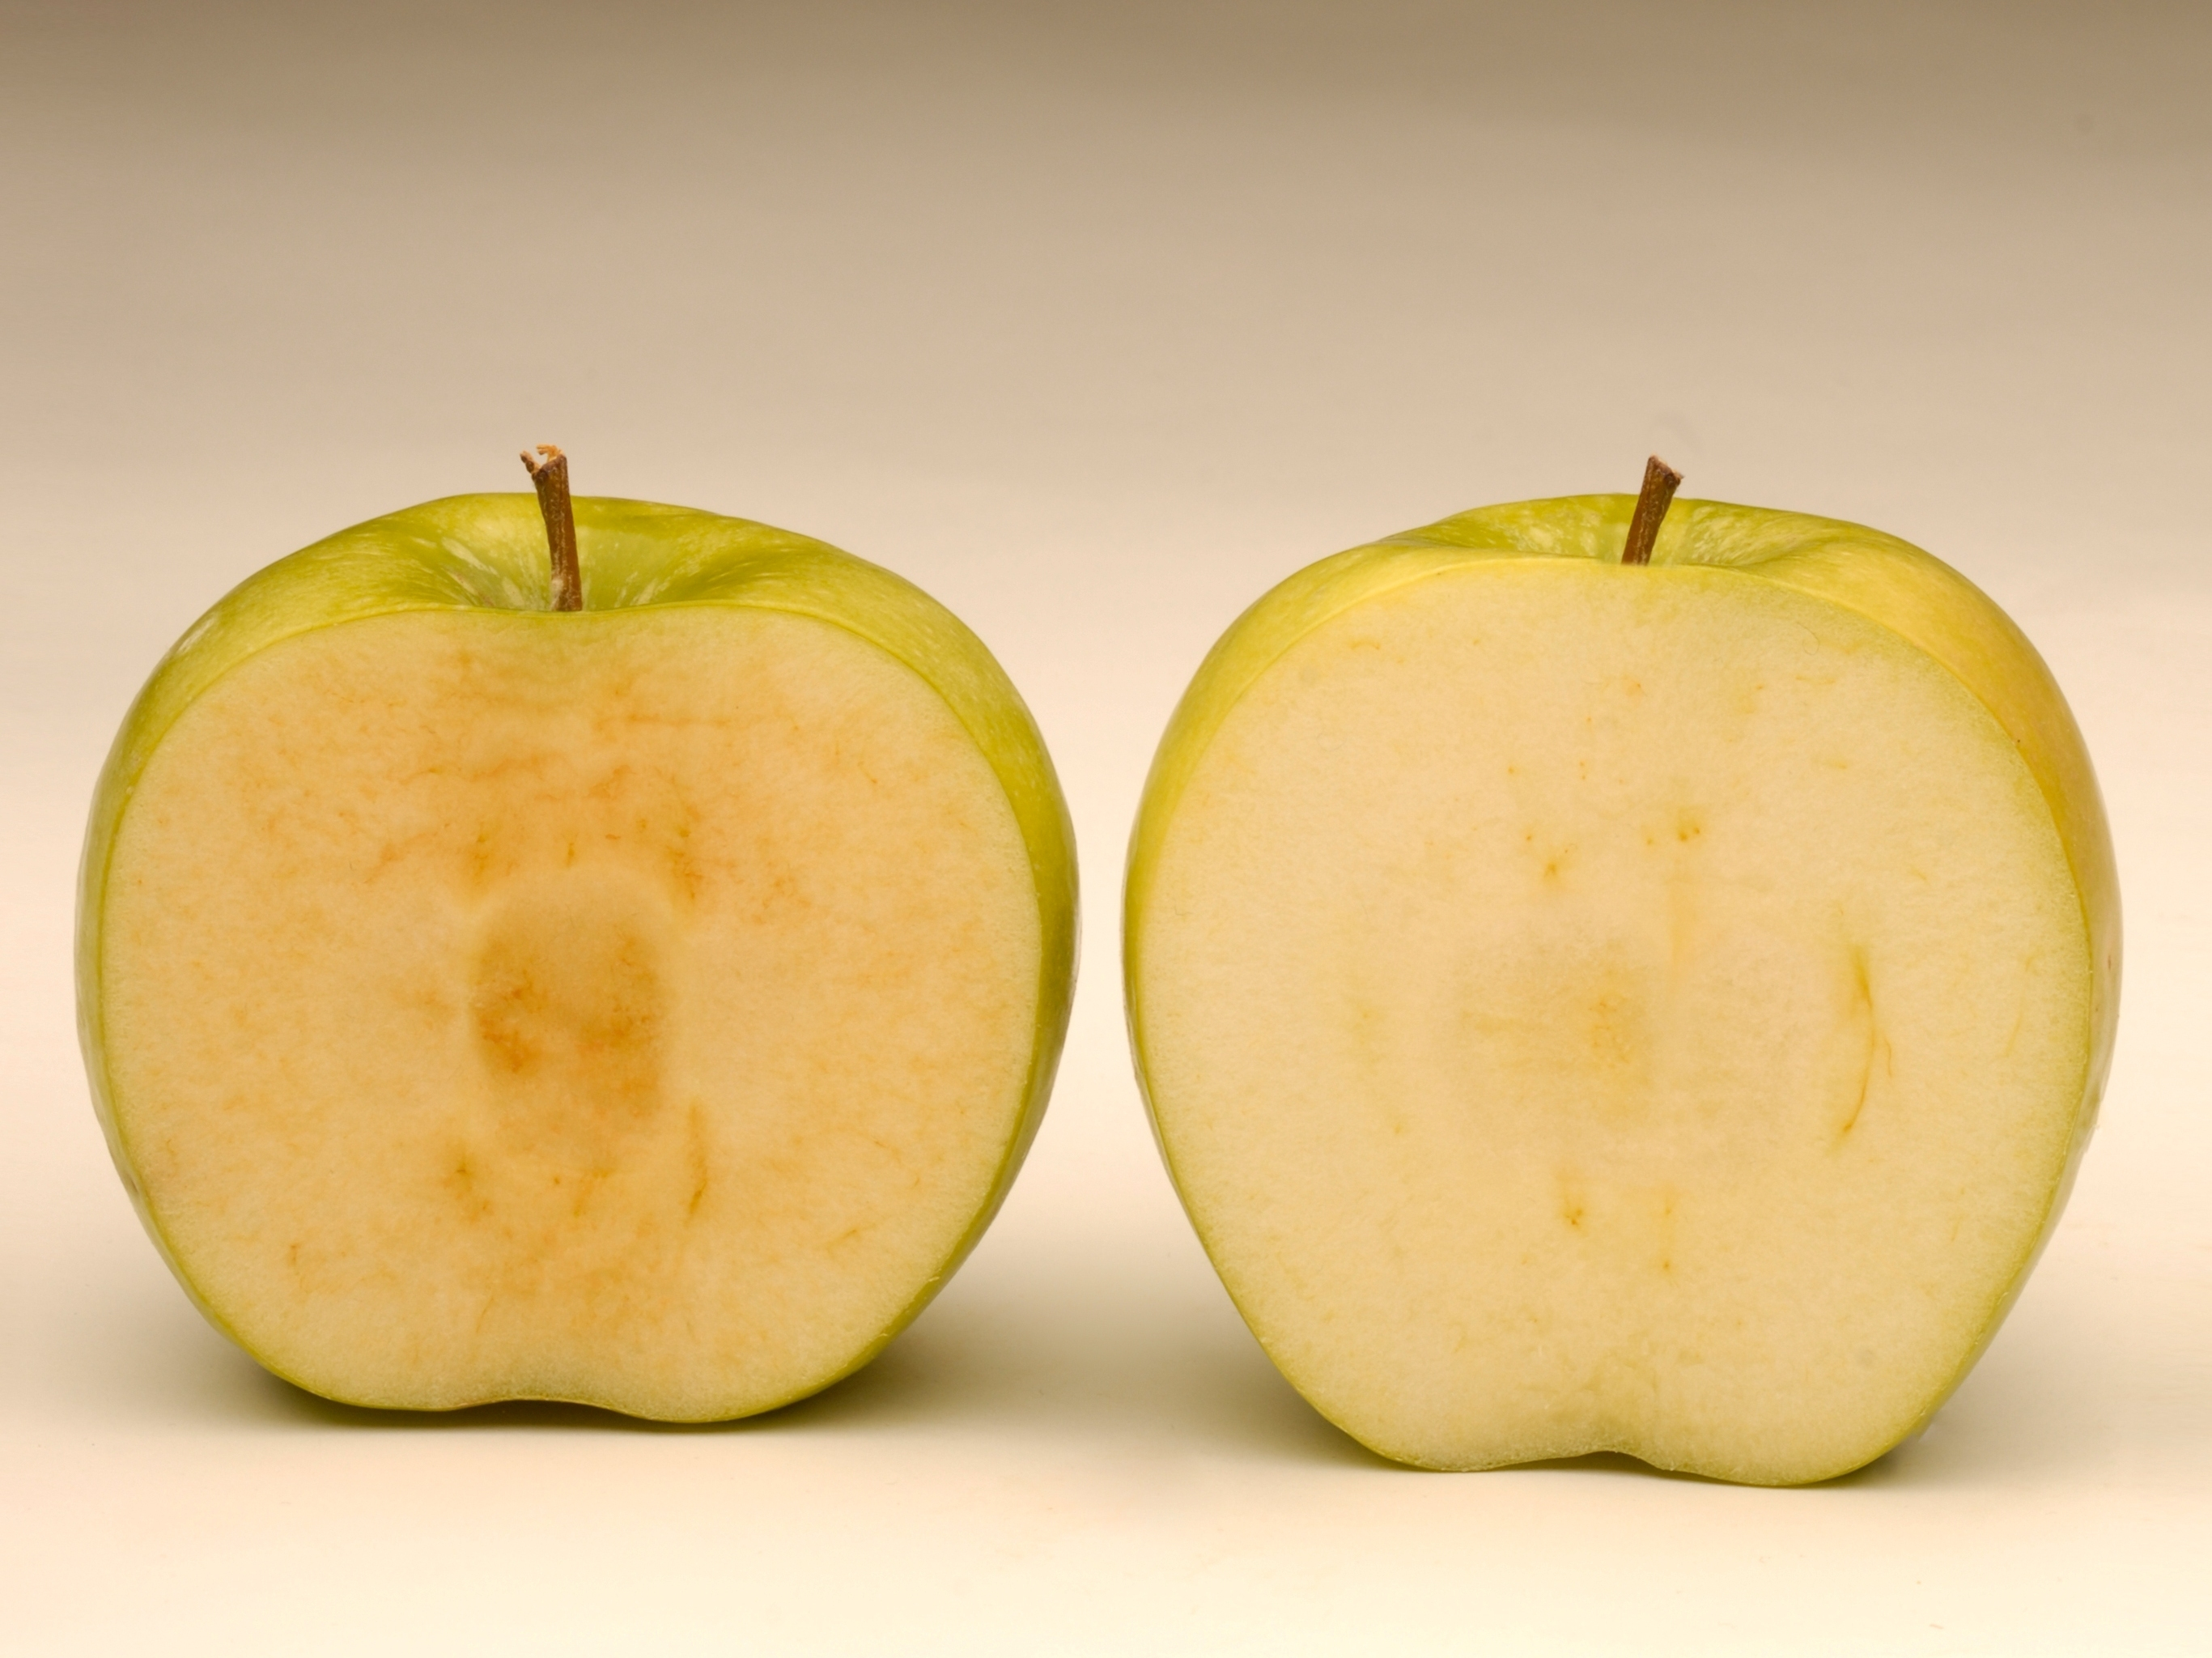 This GMO Apple Won't Brown. Will That Sour The Fruit's Image?